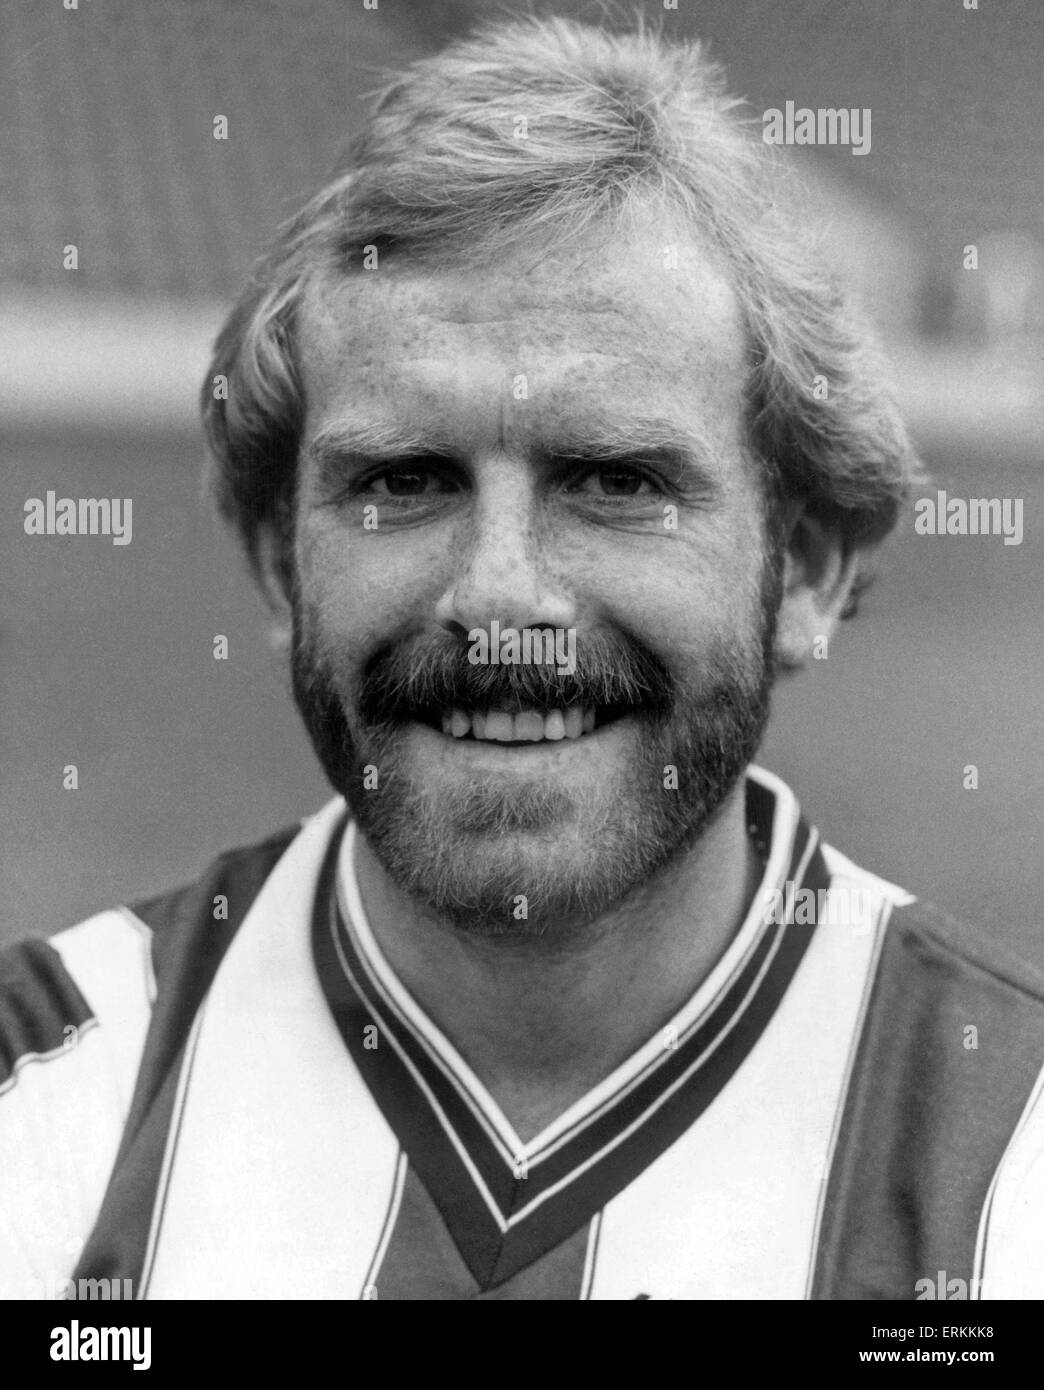 West Bromwich Albion player, Tony Gealish. 4th October 1984 - Stock Image